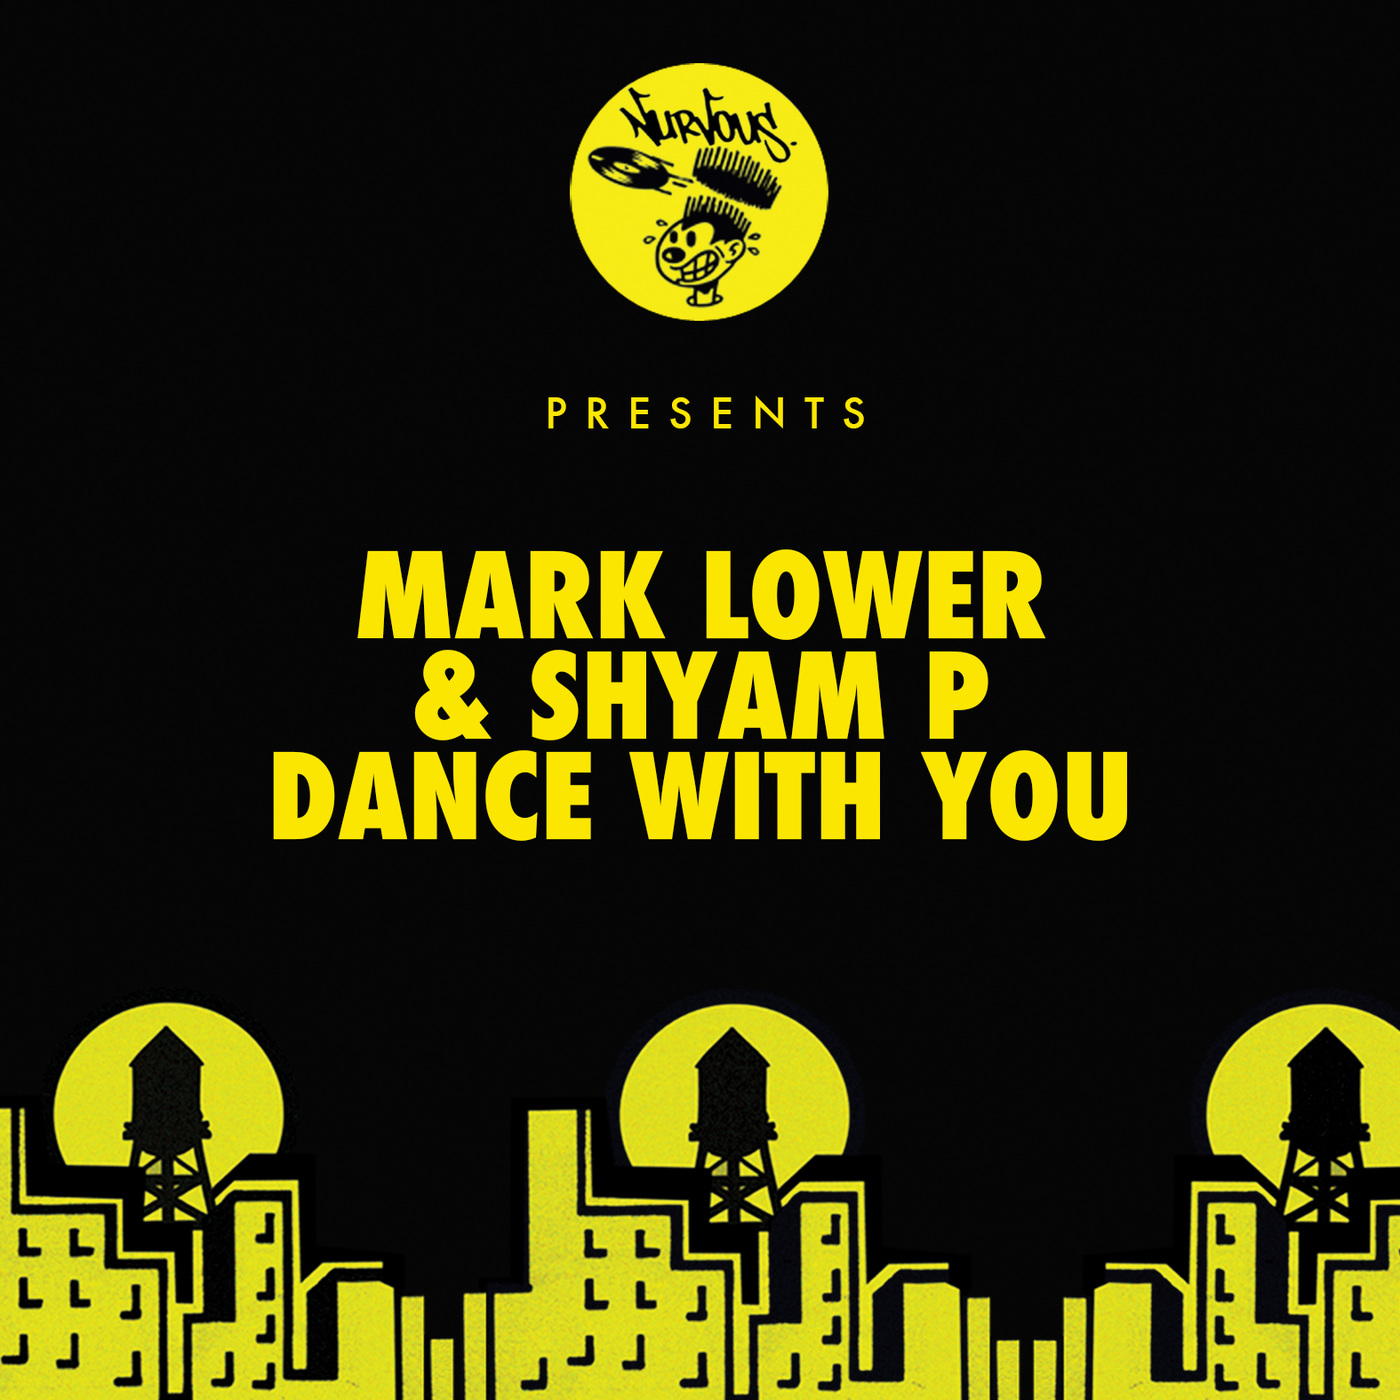 Mark Lower & Shyam P - Dance With You (Original Mix)